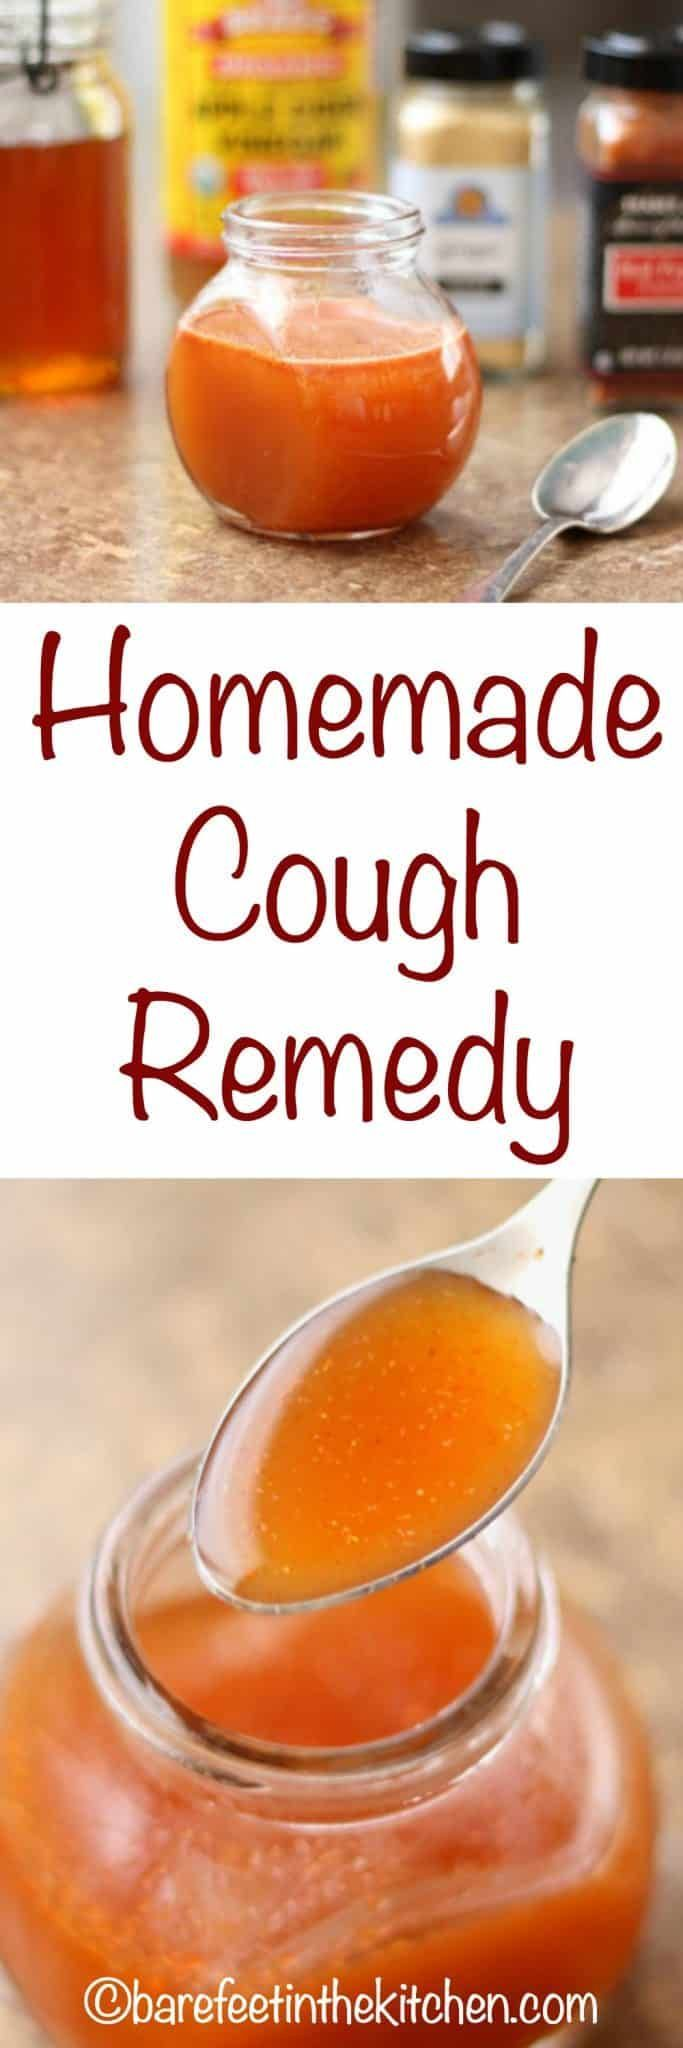 Homemade Cough Remedy | Barefeet in the Kitchen